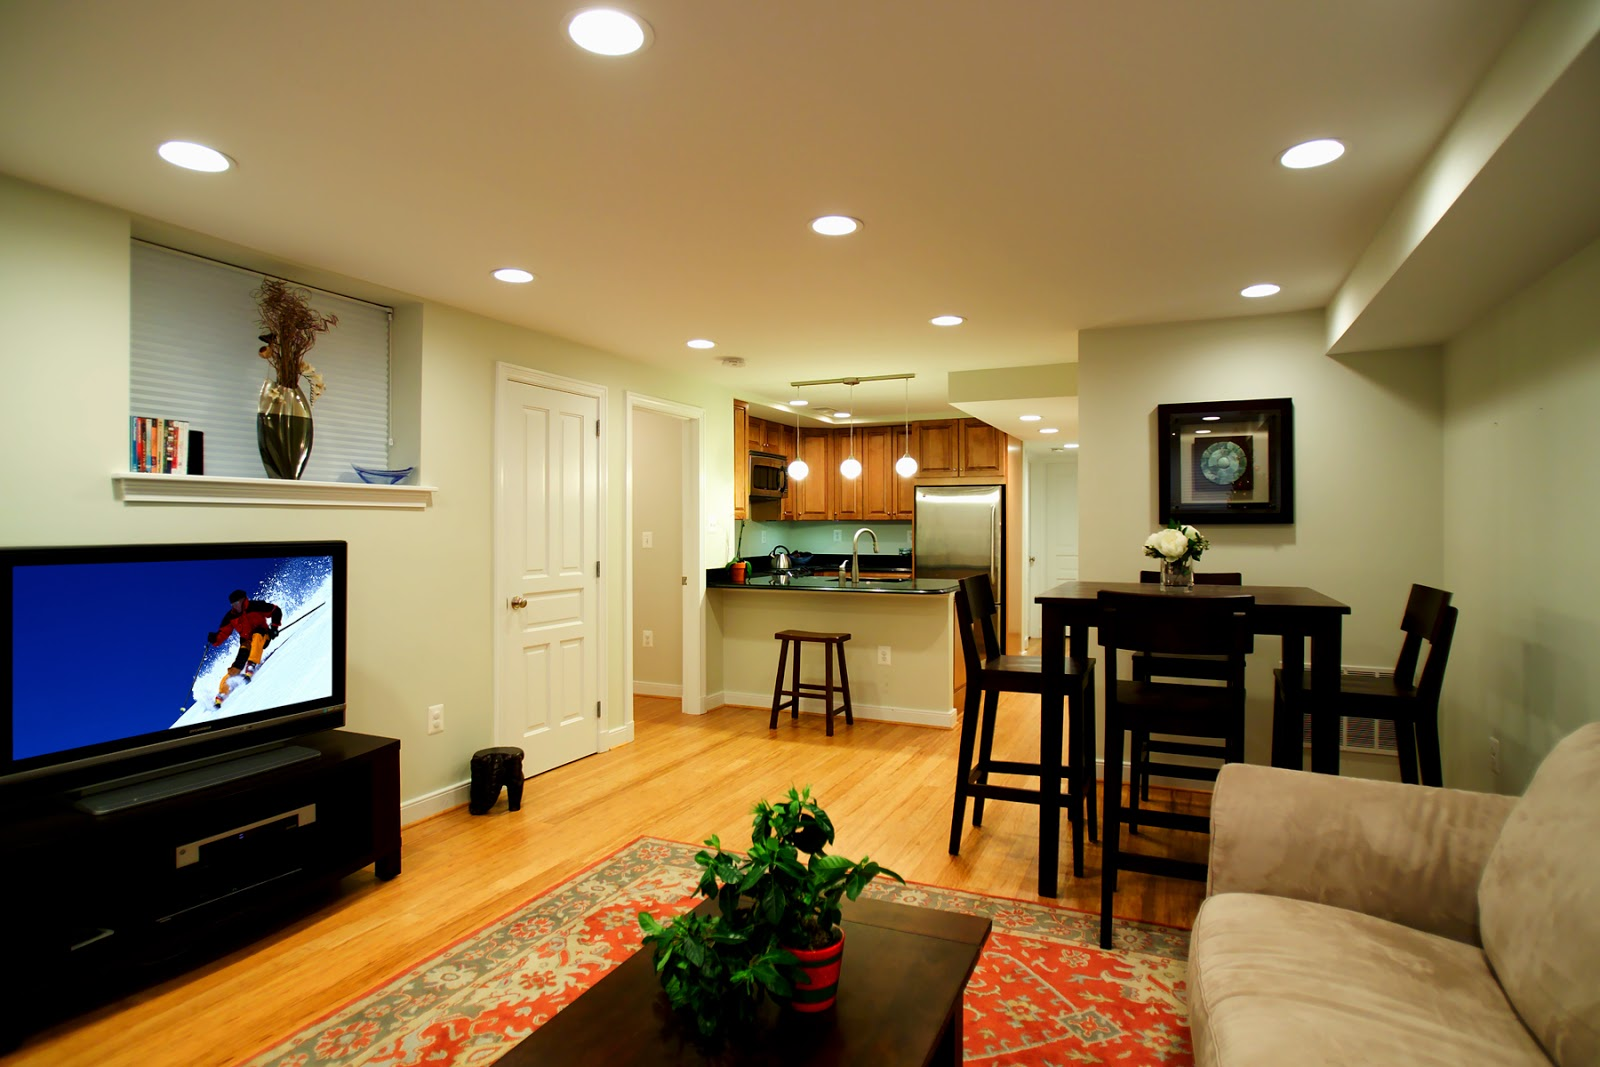 basement decorating ideas is a part of all about basement decorating